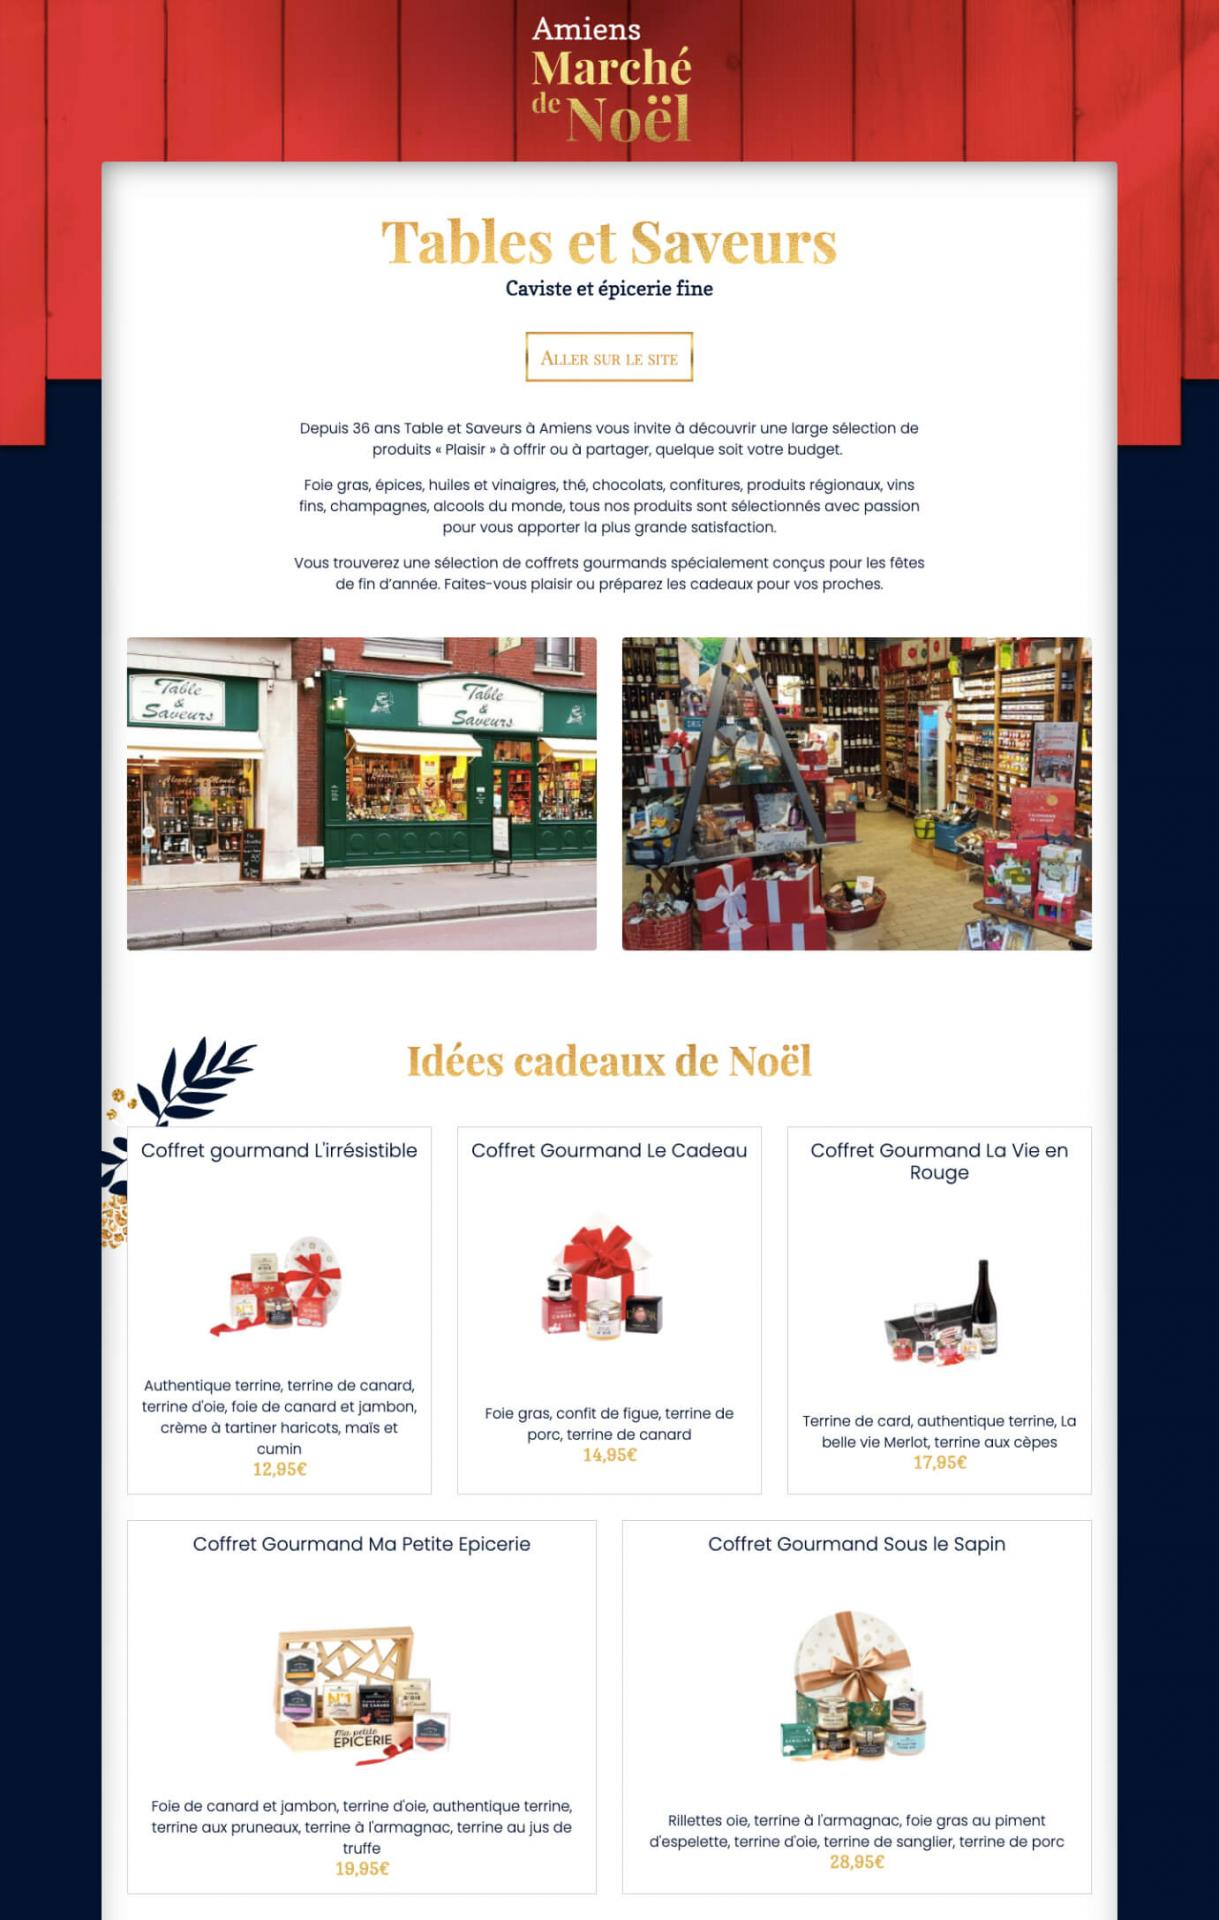 Chalet marche noel virtuel amiens